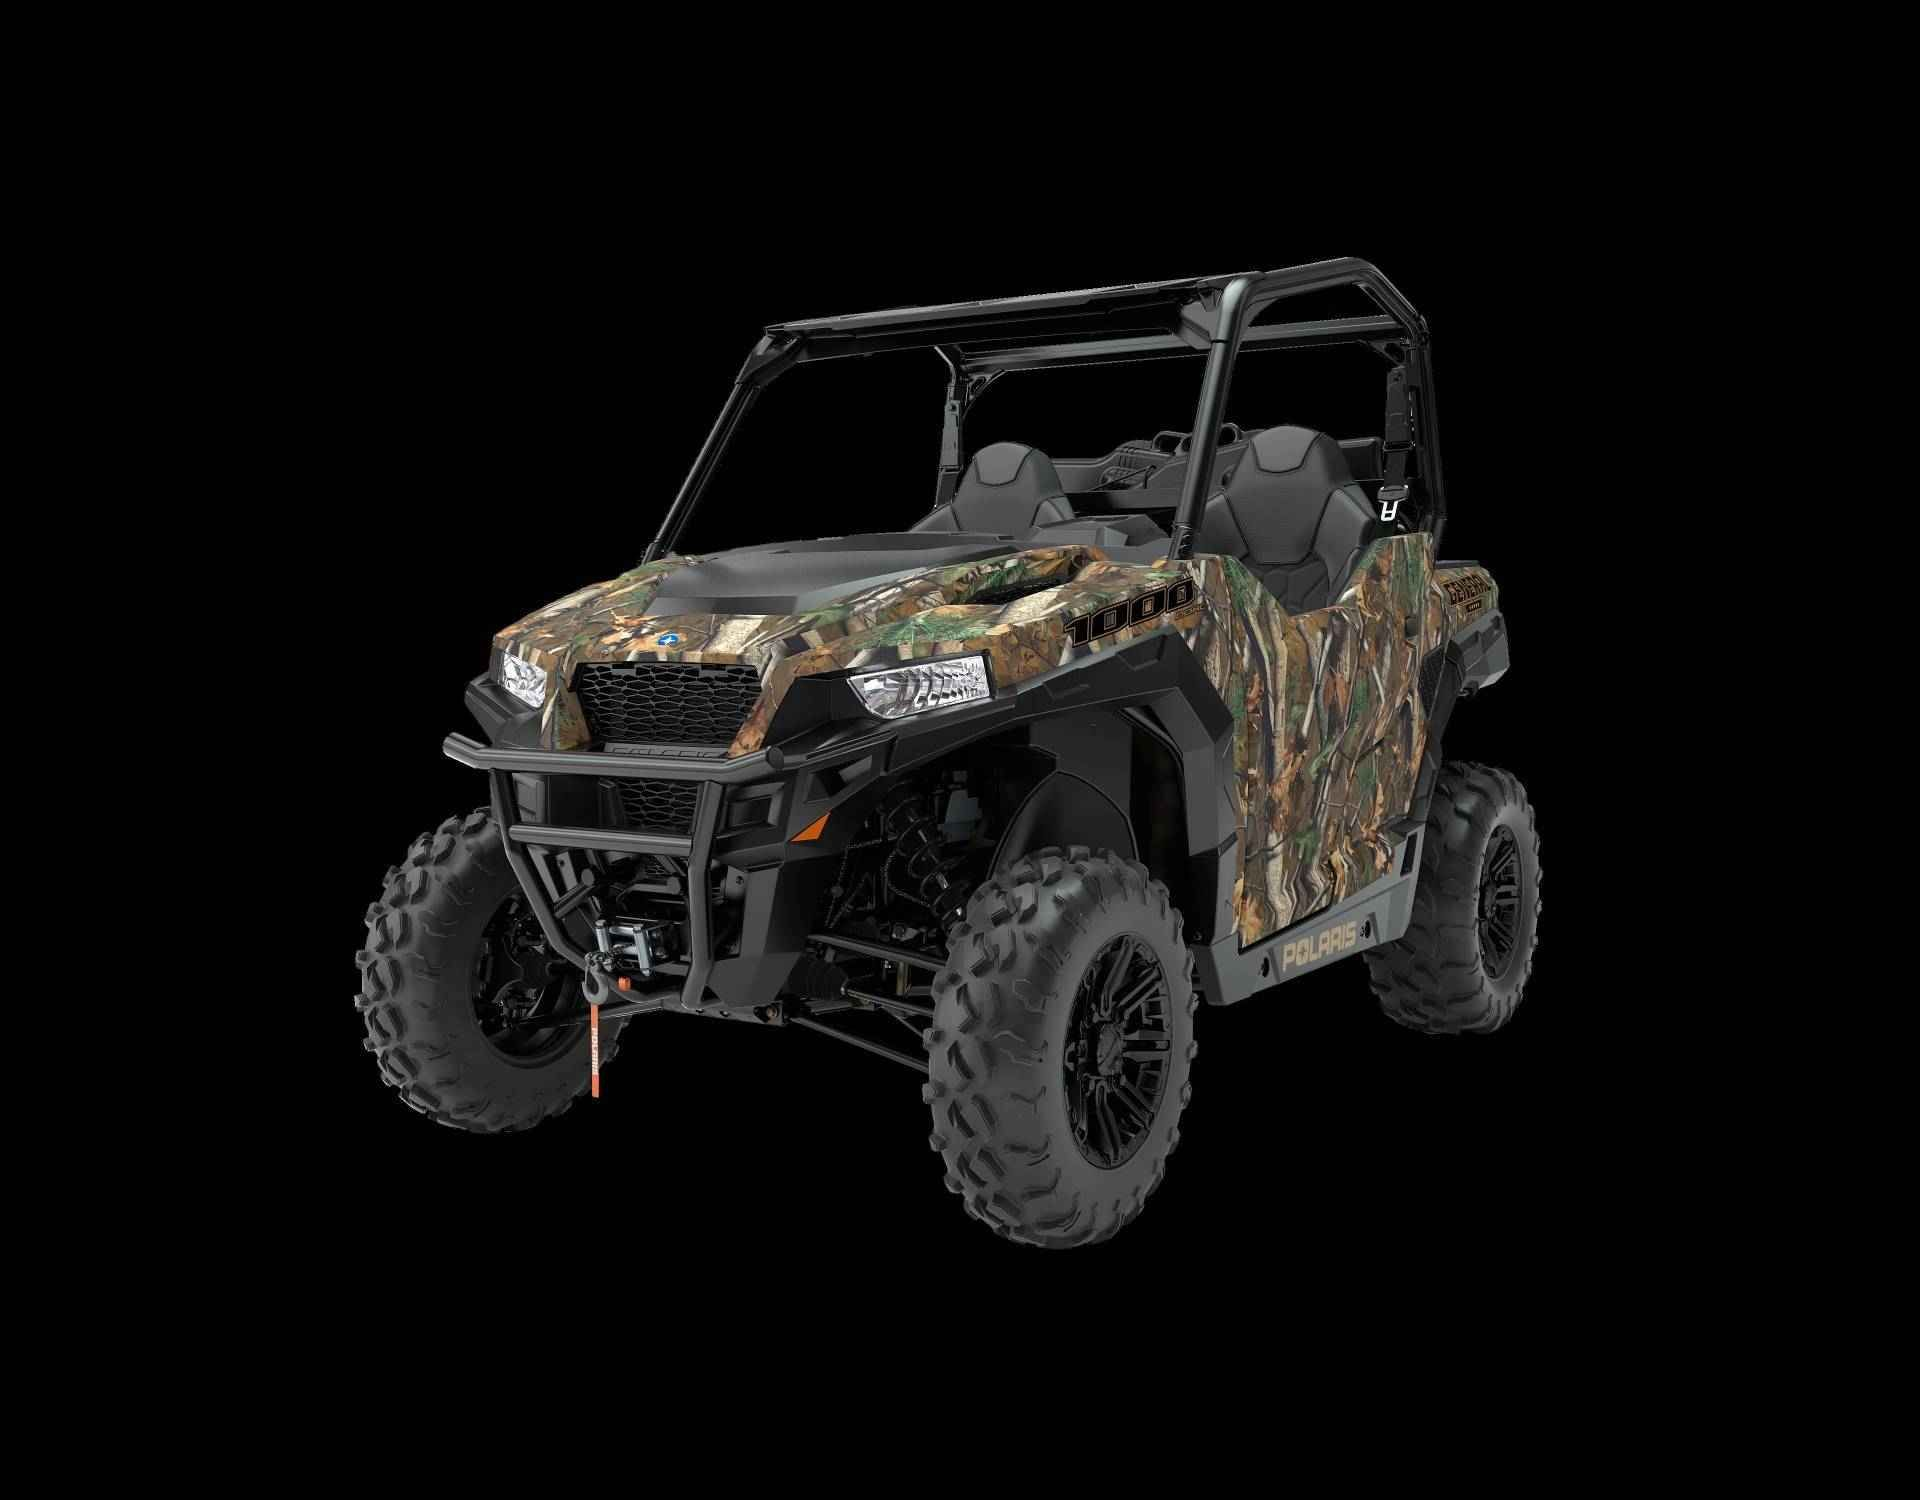 New 2017 Polaris General™ 1000 EPS ATVs For Sale in Mississippi. Hunter Edition Polaris Pursuit®Camo Class-Best 100 HP to light up the trail and broad, usable torque band to work All-new cabin with sporty bucket seats and easy in and out cab access Class-Leading Suspension, ground clearance for the trail and to-do list